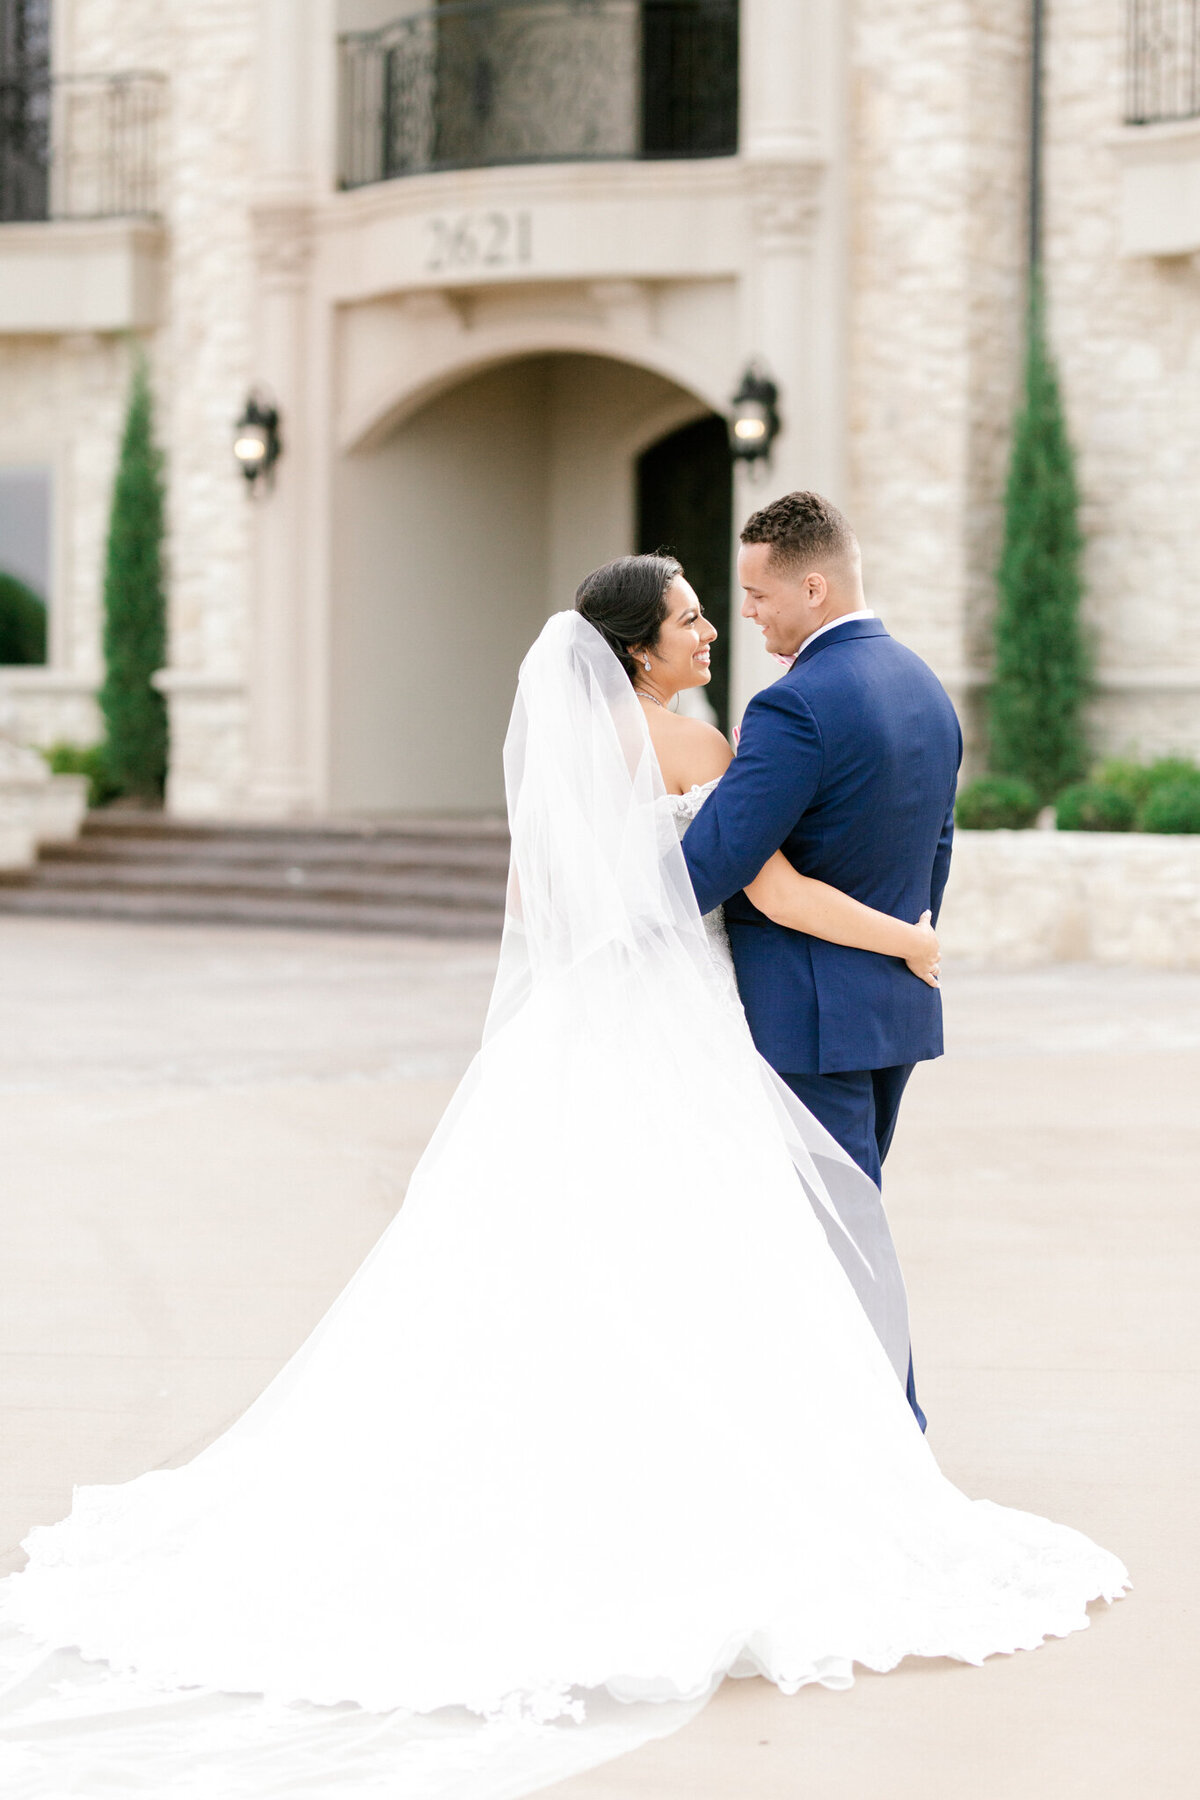 Jasmine & Josh Wedding at Knotting Hill Place | Dallas DFW Wedding Photographer | Sami Kathryn Photography-101